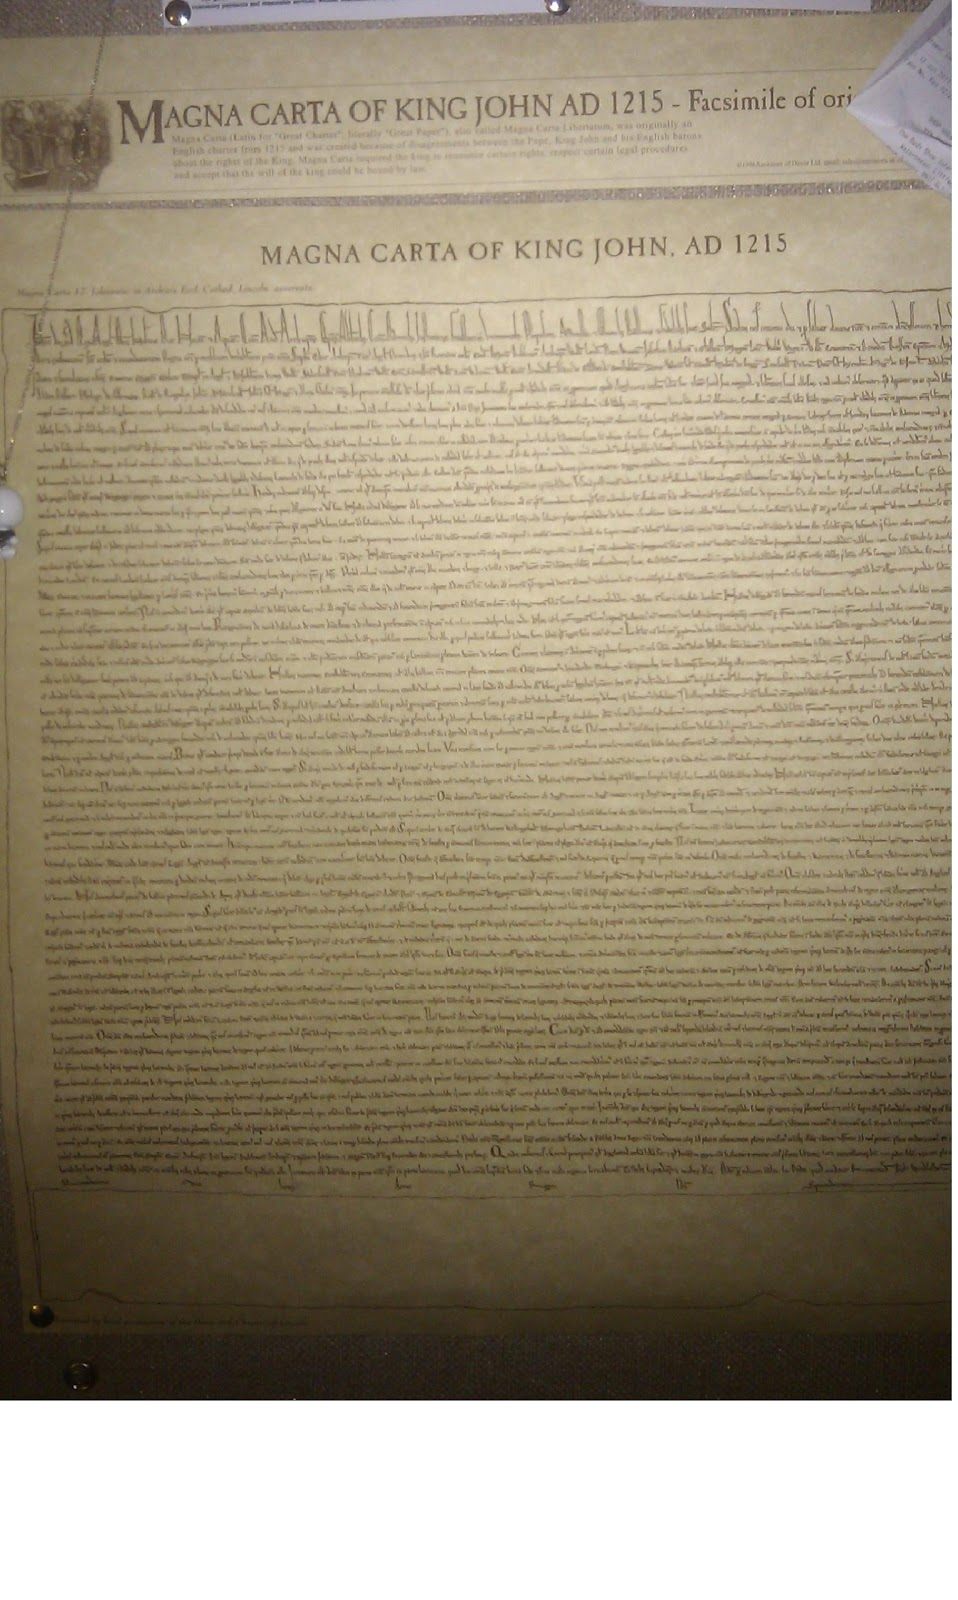 1215 magna carta book review On june 15, 1215, facing a rebellion of his barons, king john of england (yep, the villain of the robin hood movie, but that's a different subject) was forced to the conference table, and signed an historic charter - magna carta.